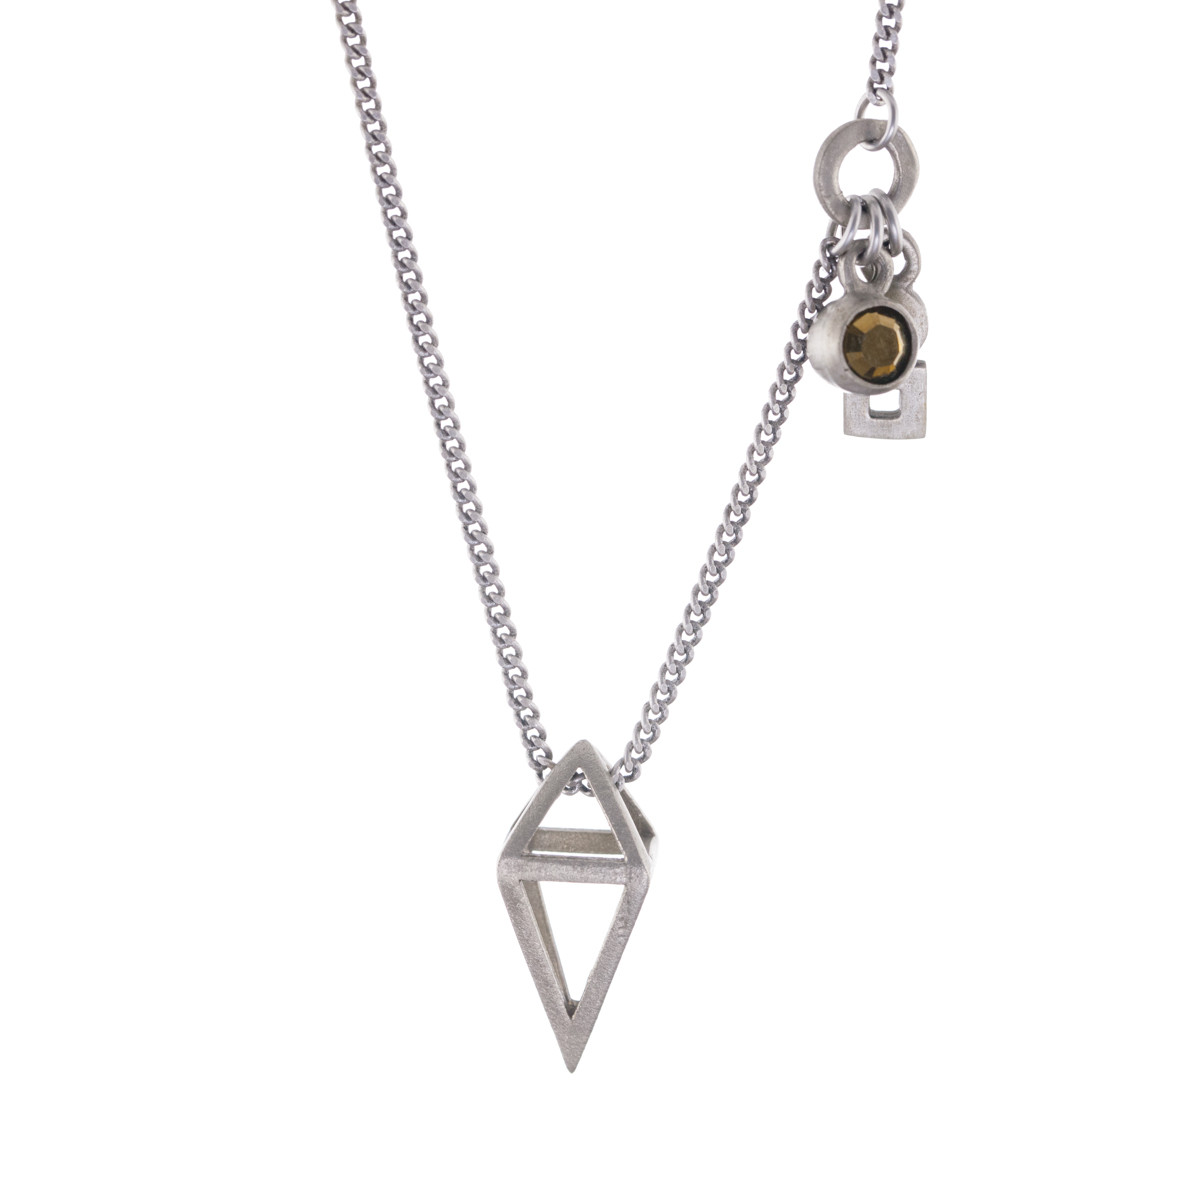 Hayley Inder Design - Sterling Silver  |Jewellery-Necklace-Geometric-Pendant-with-Charms- 708  |McAtamney Gallery and Design Store